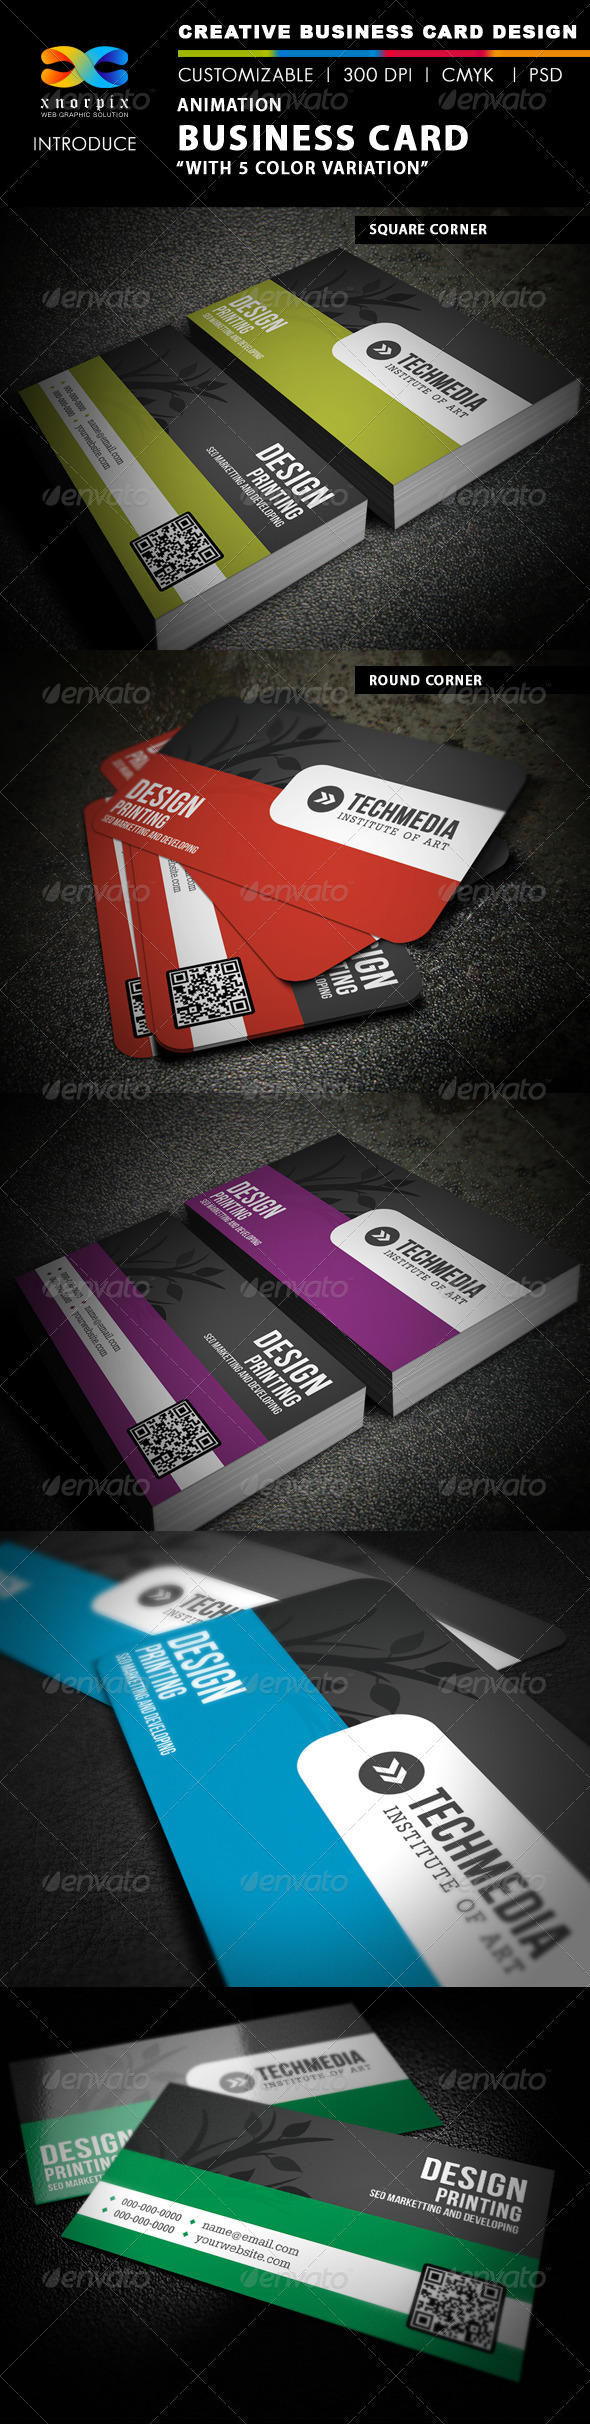 Animation Business Card - Creative Business Cards